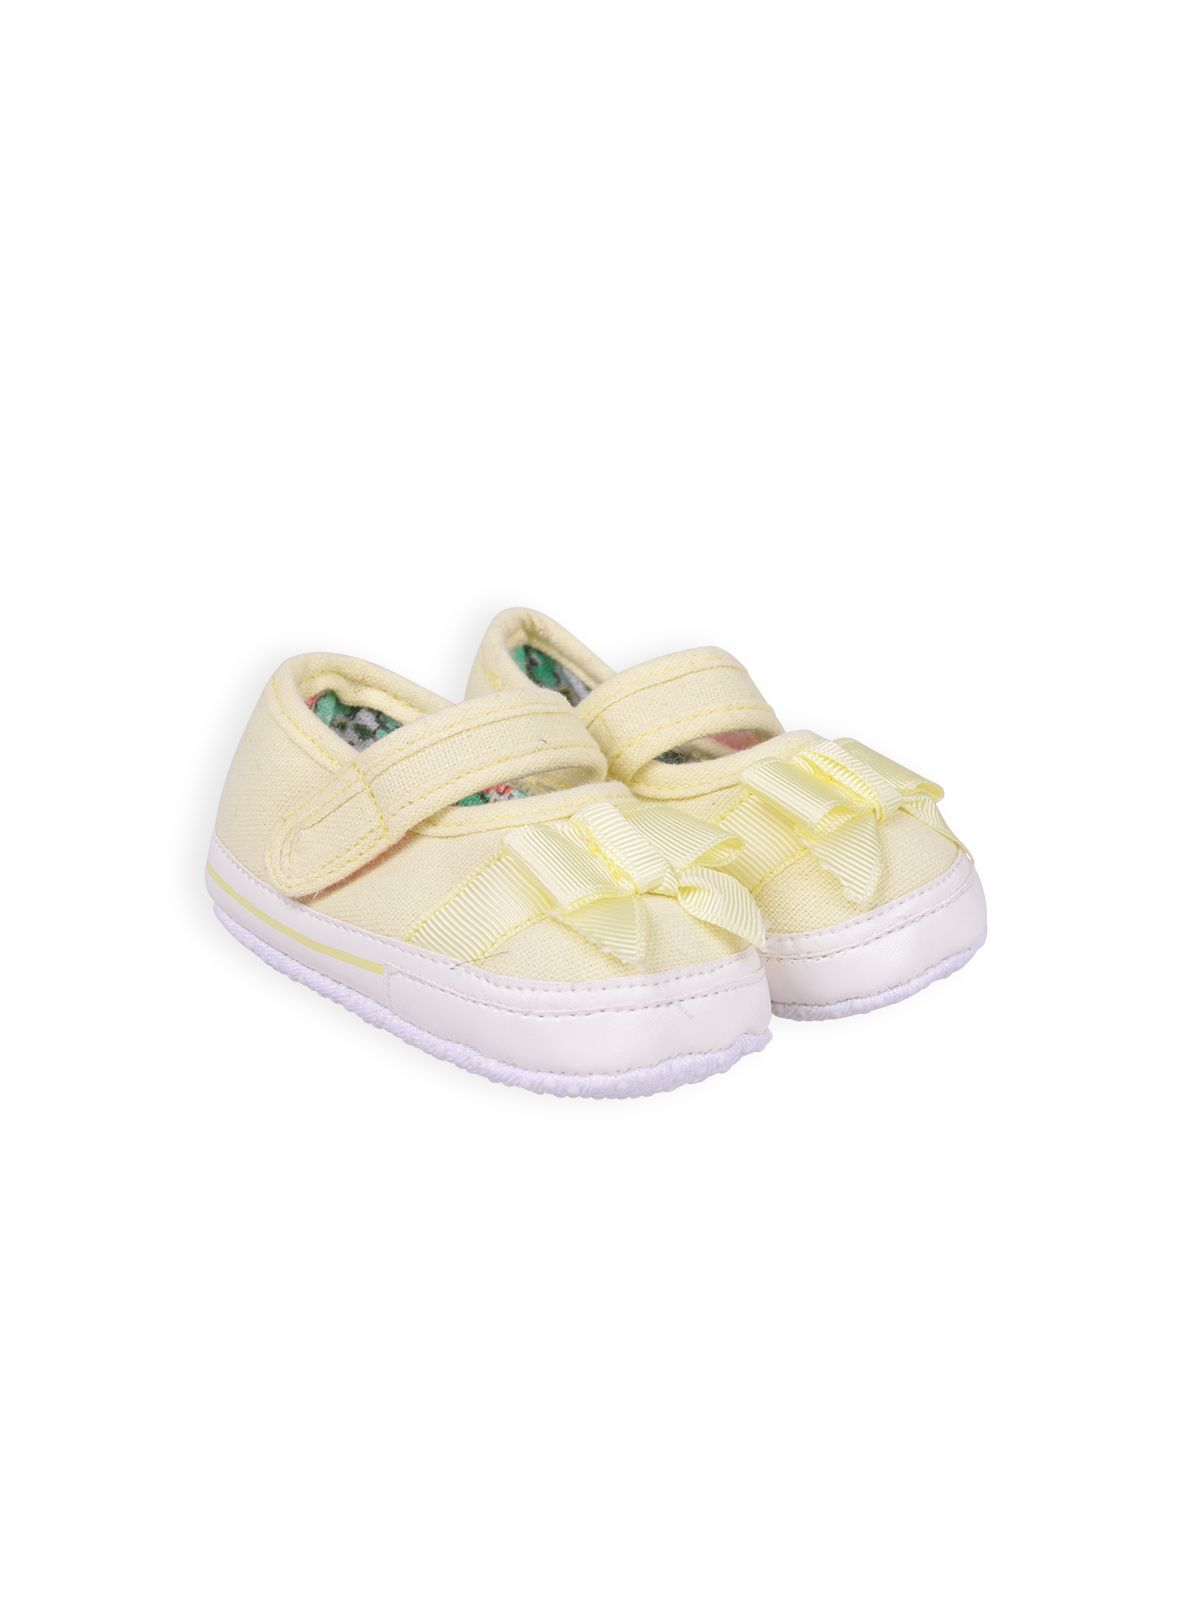 Baby girl bow maryjane shoes